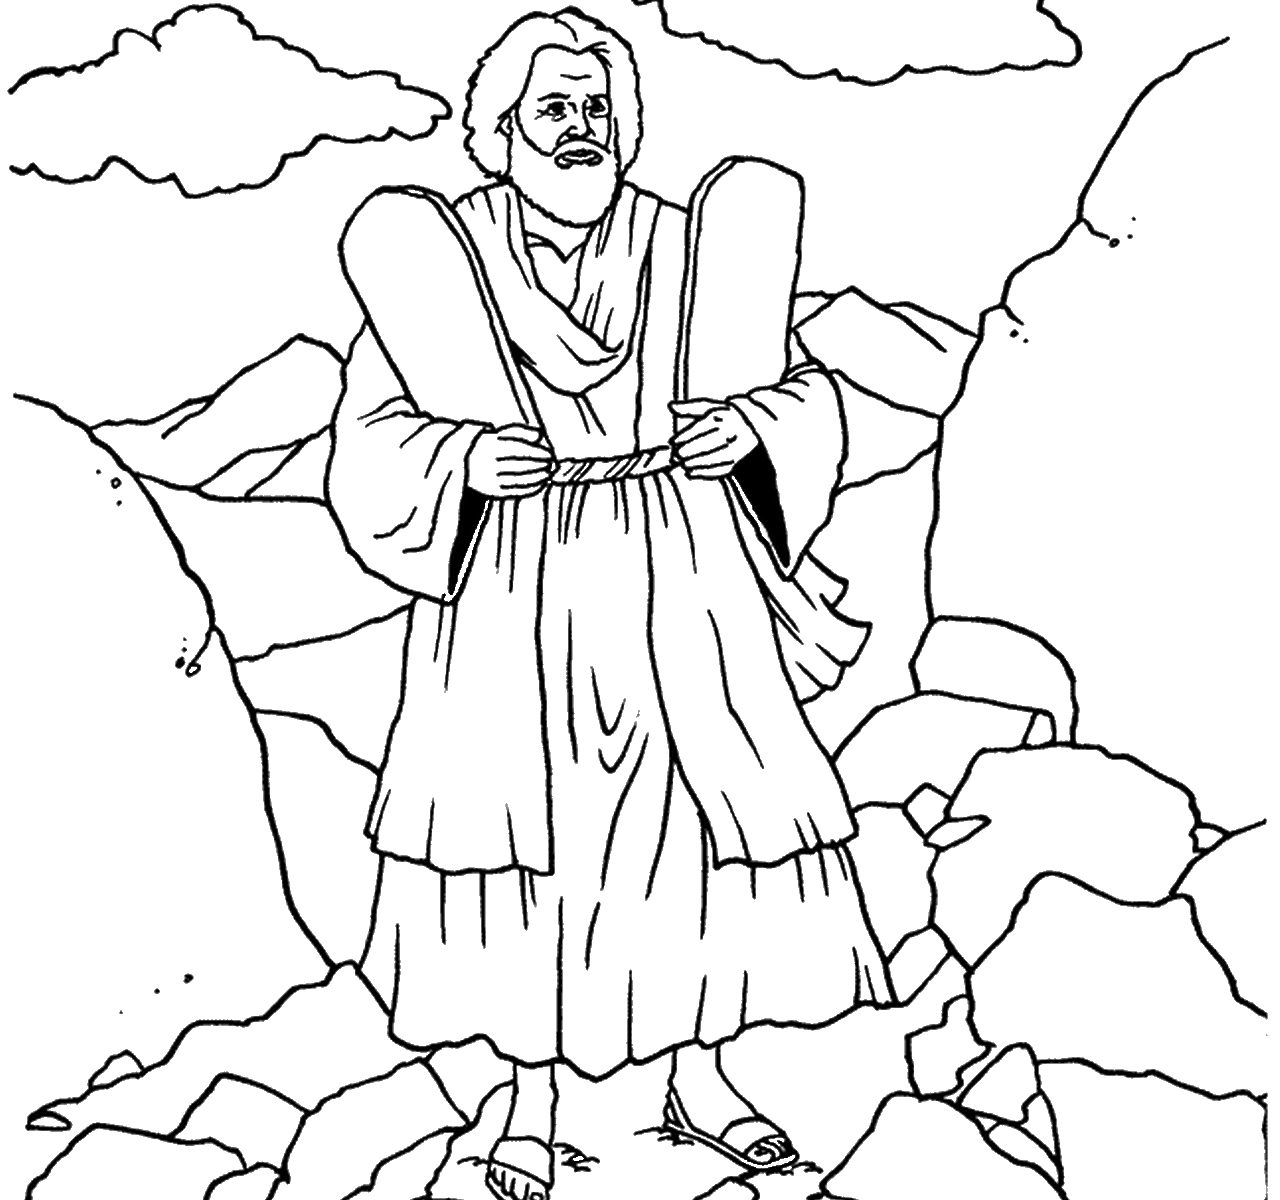 Tens Coloring Sheet Best Of Free Printable Moses Pages Catholic - Free Printable Ten Commandments Coloring Pages